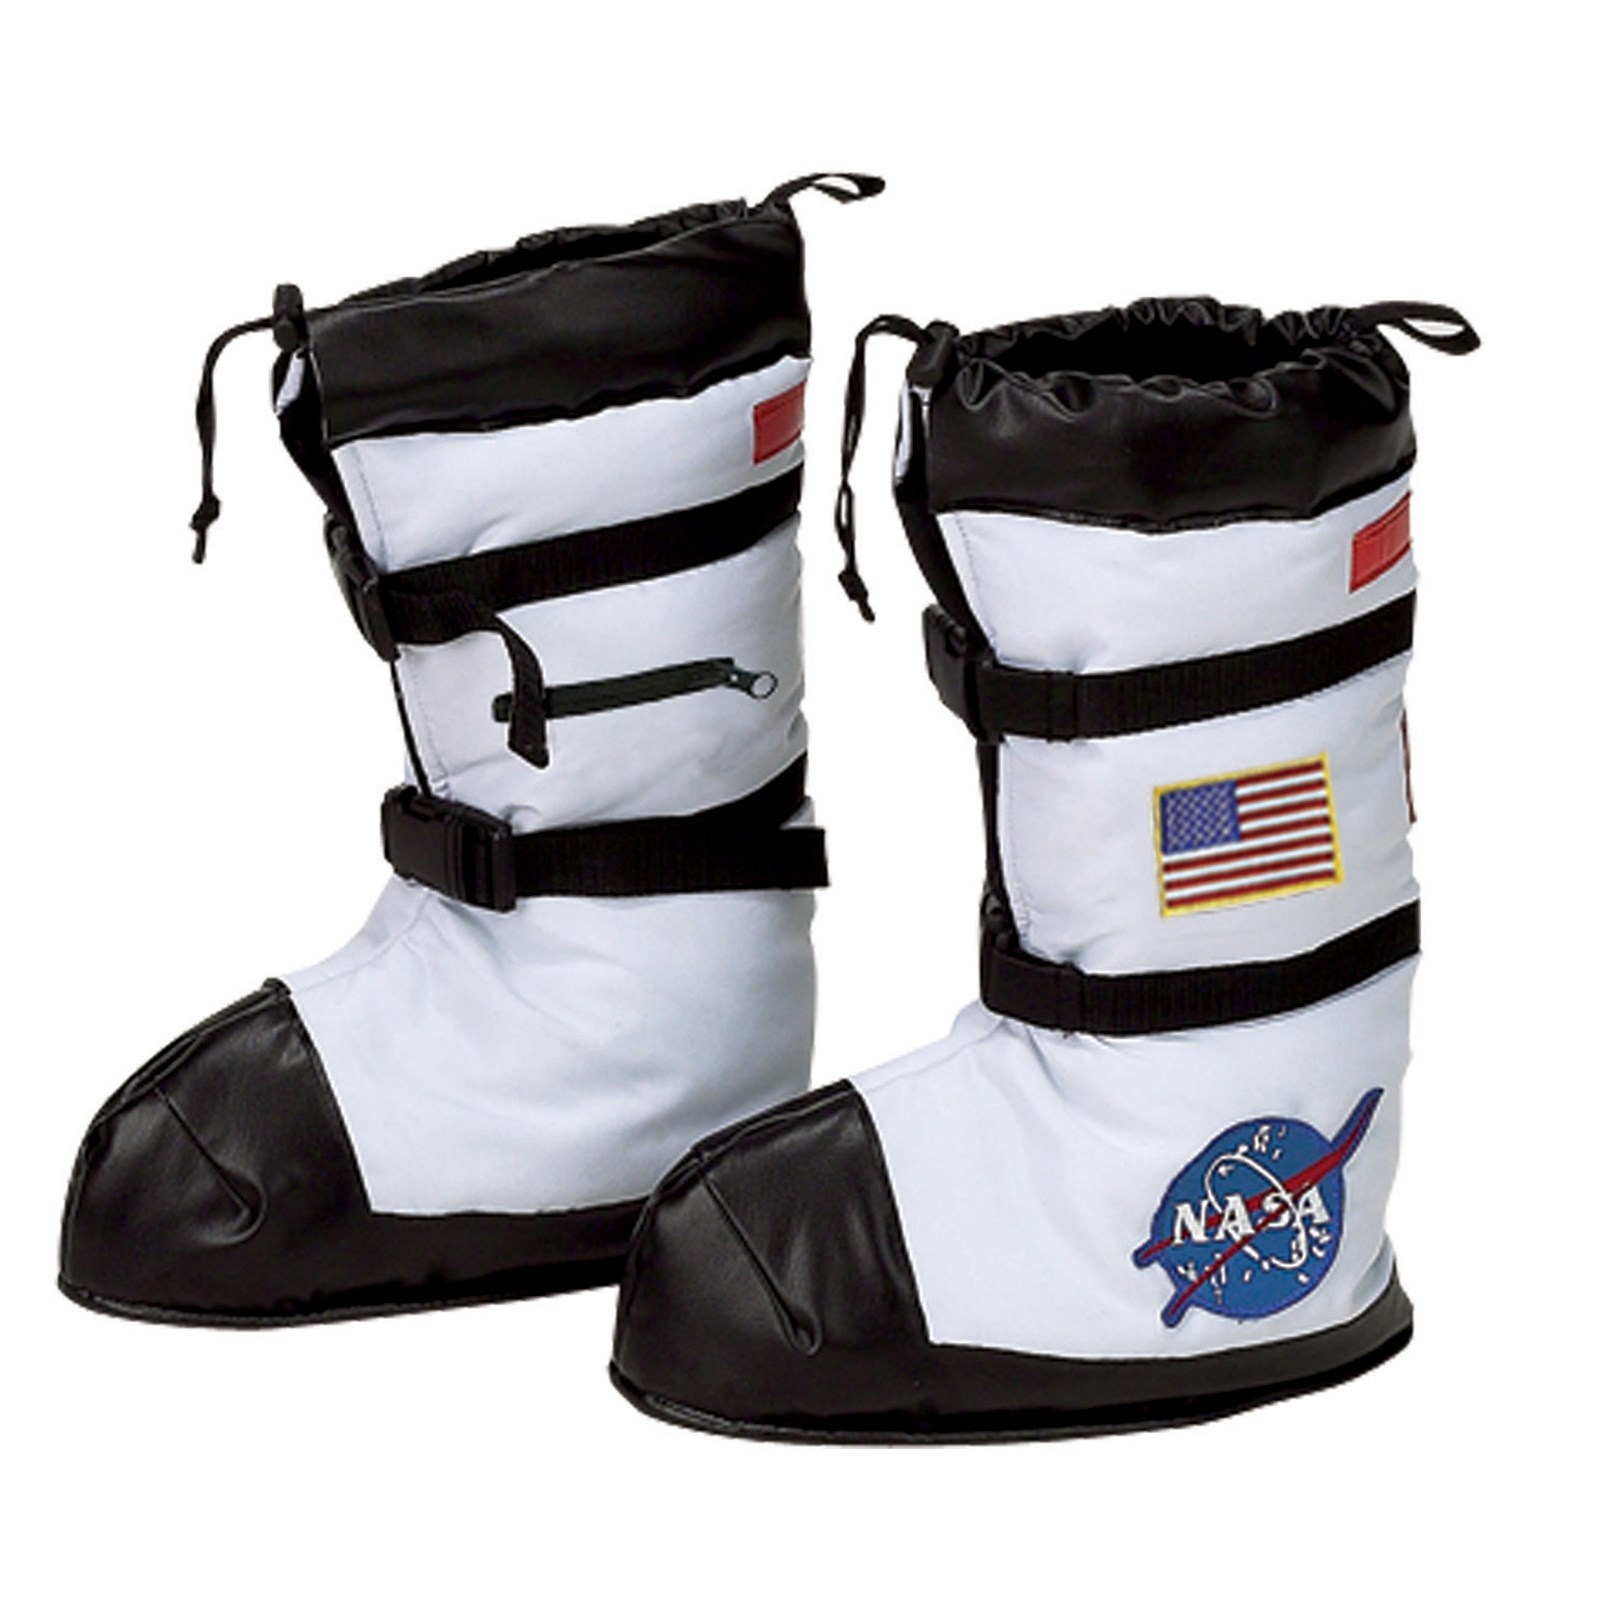 Astronaut Child Boot Covers Small